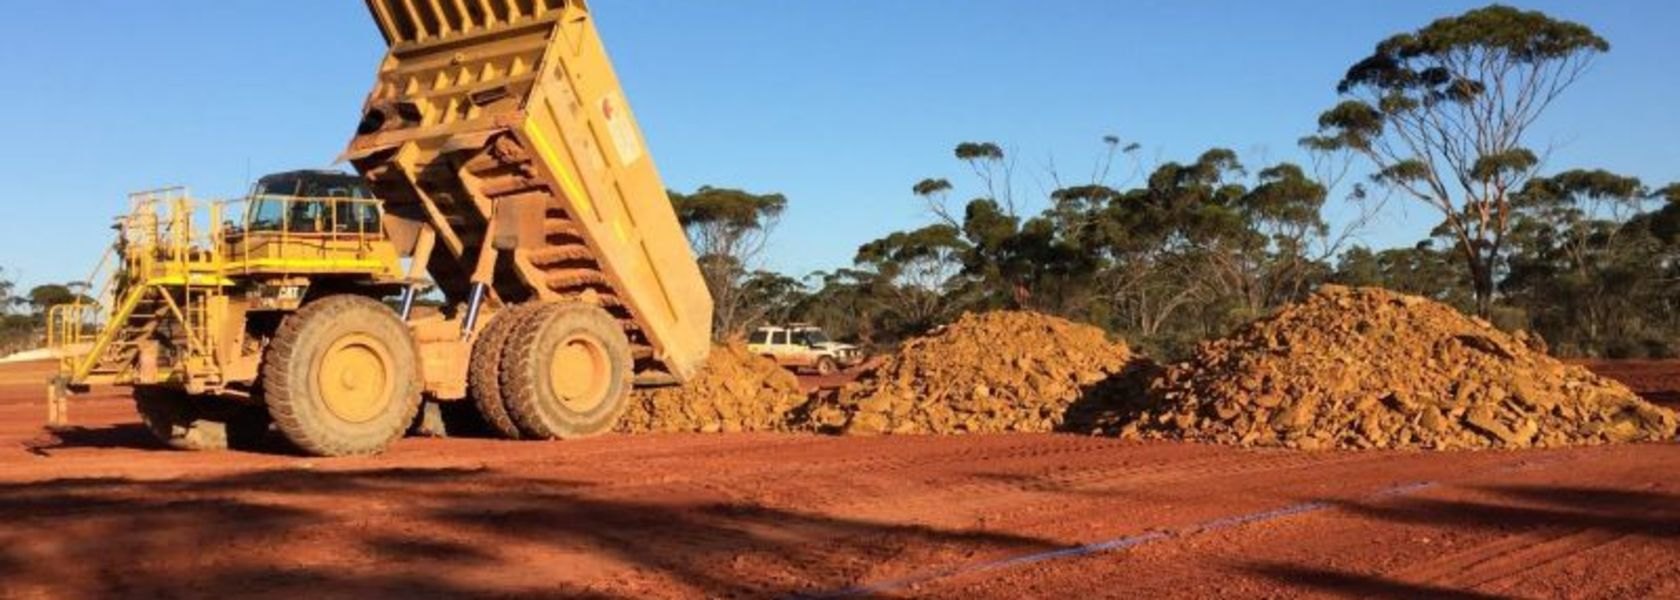 Intermin completing Teal gold mining venture